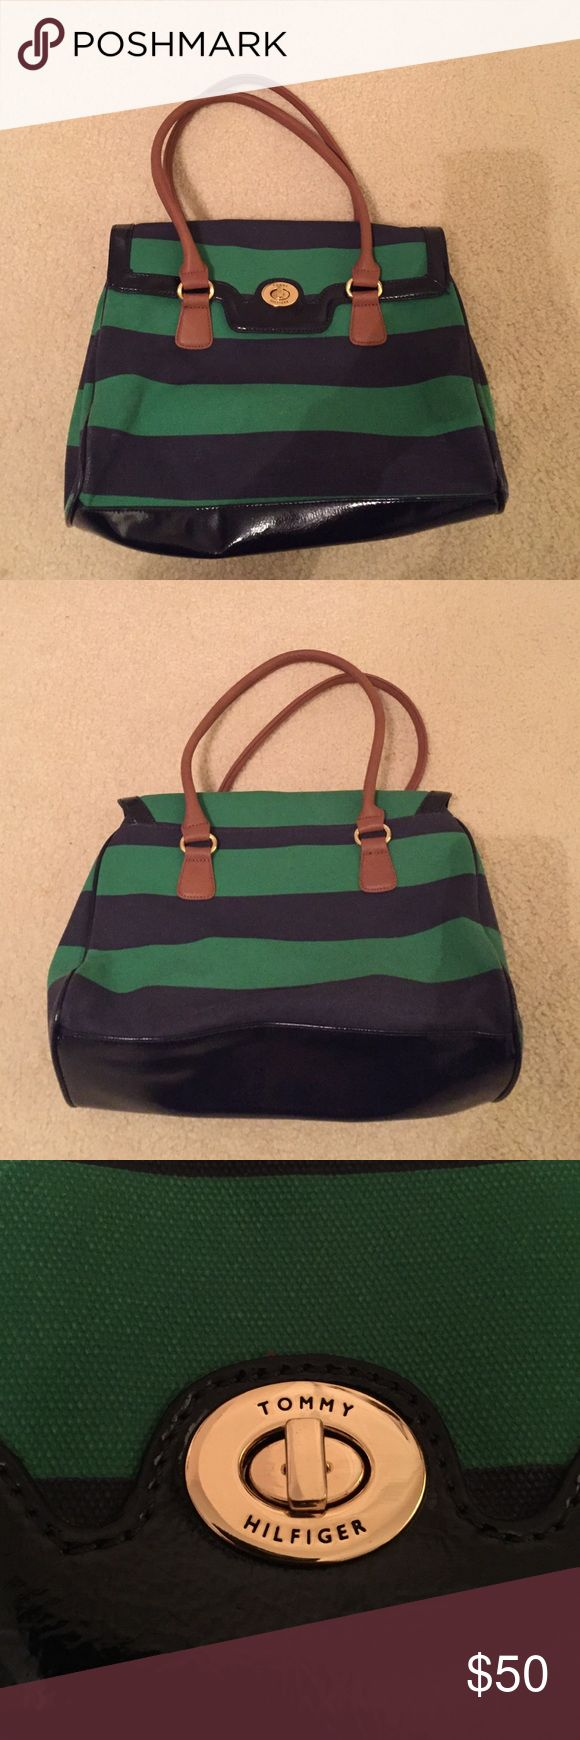 Real Tommy Hilfiger Green & Navy Purse Real Tommy Hilfiger Green & Navy Purse in great condition, barely ever used. Tommy Hilfiger Bags Totes